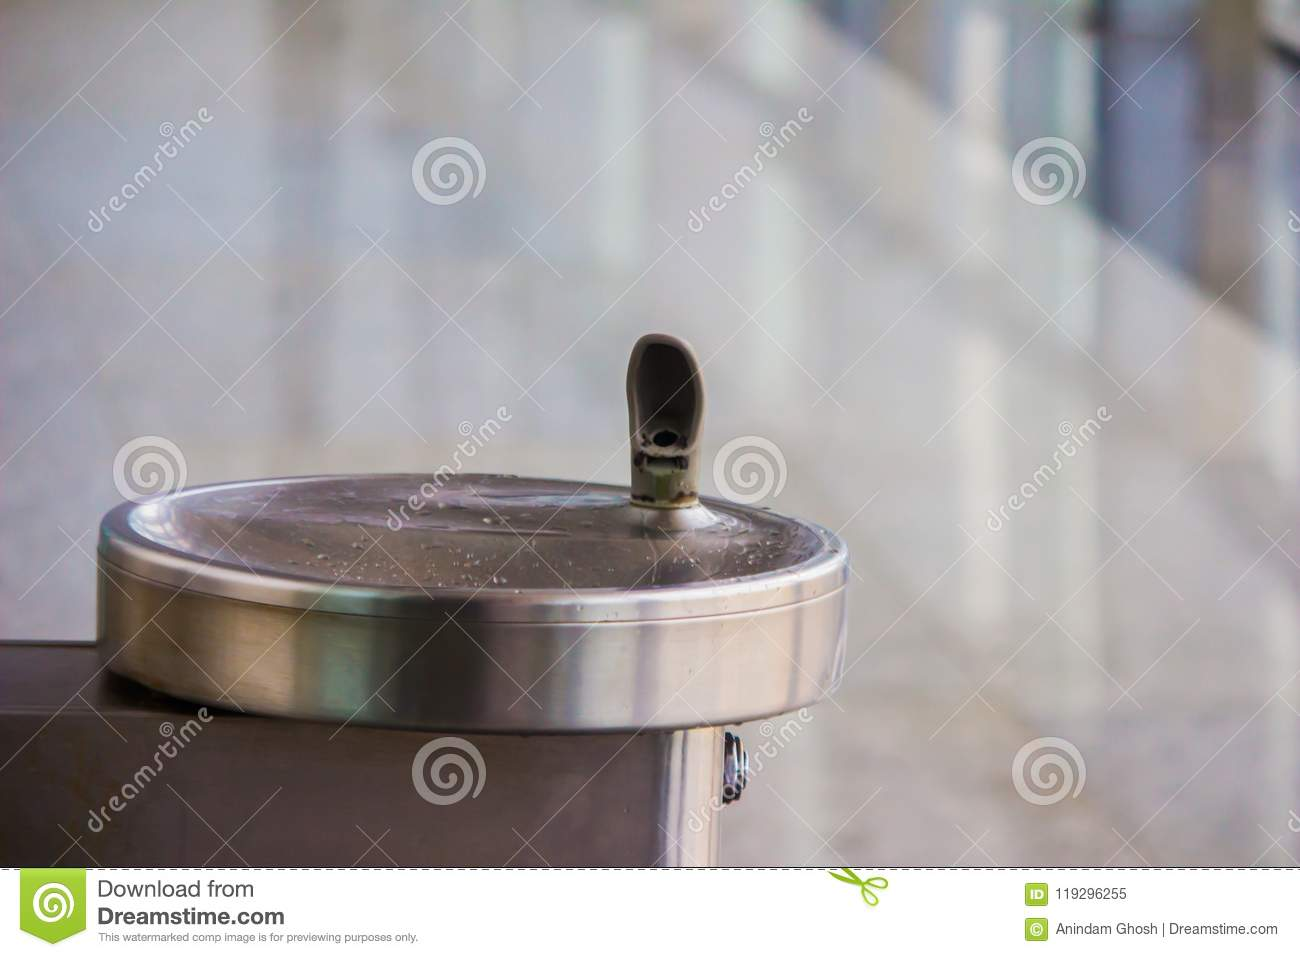 Drinking water fountain outlet in airport with water cooler and steep tap and steel sink basin